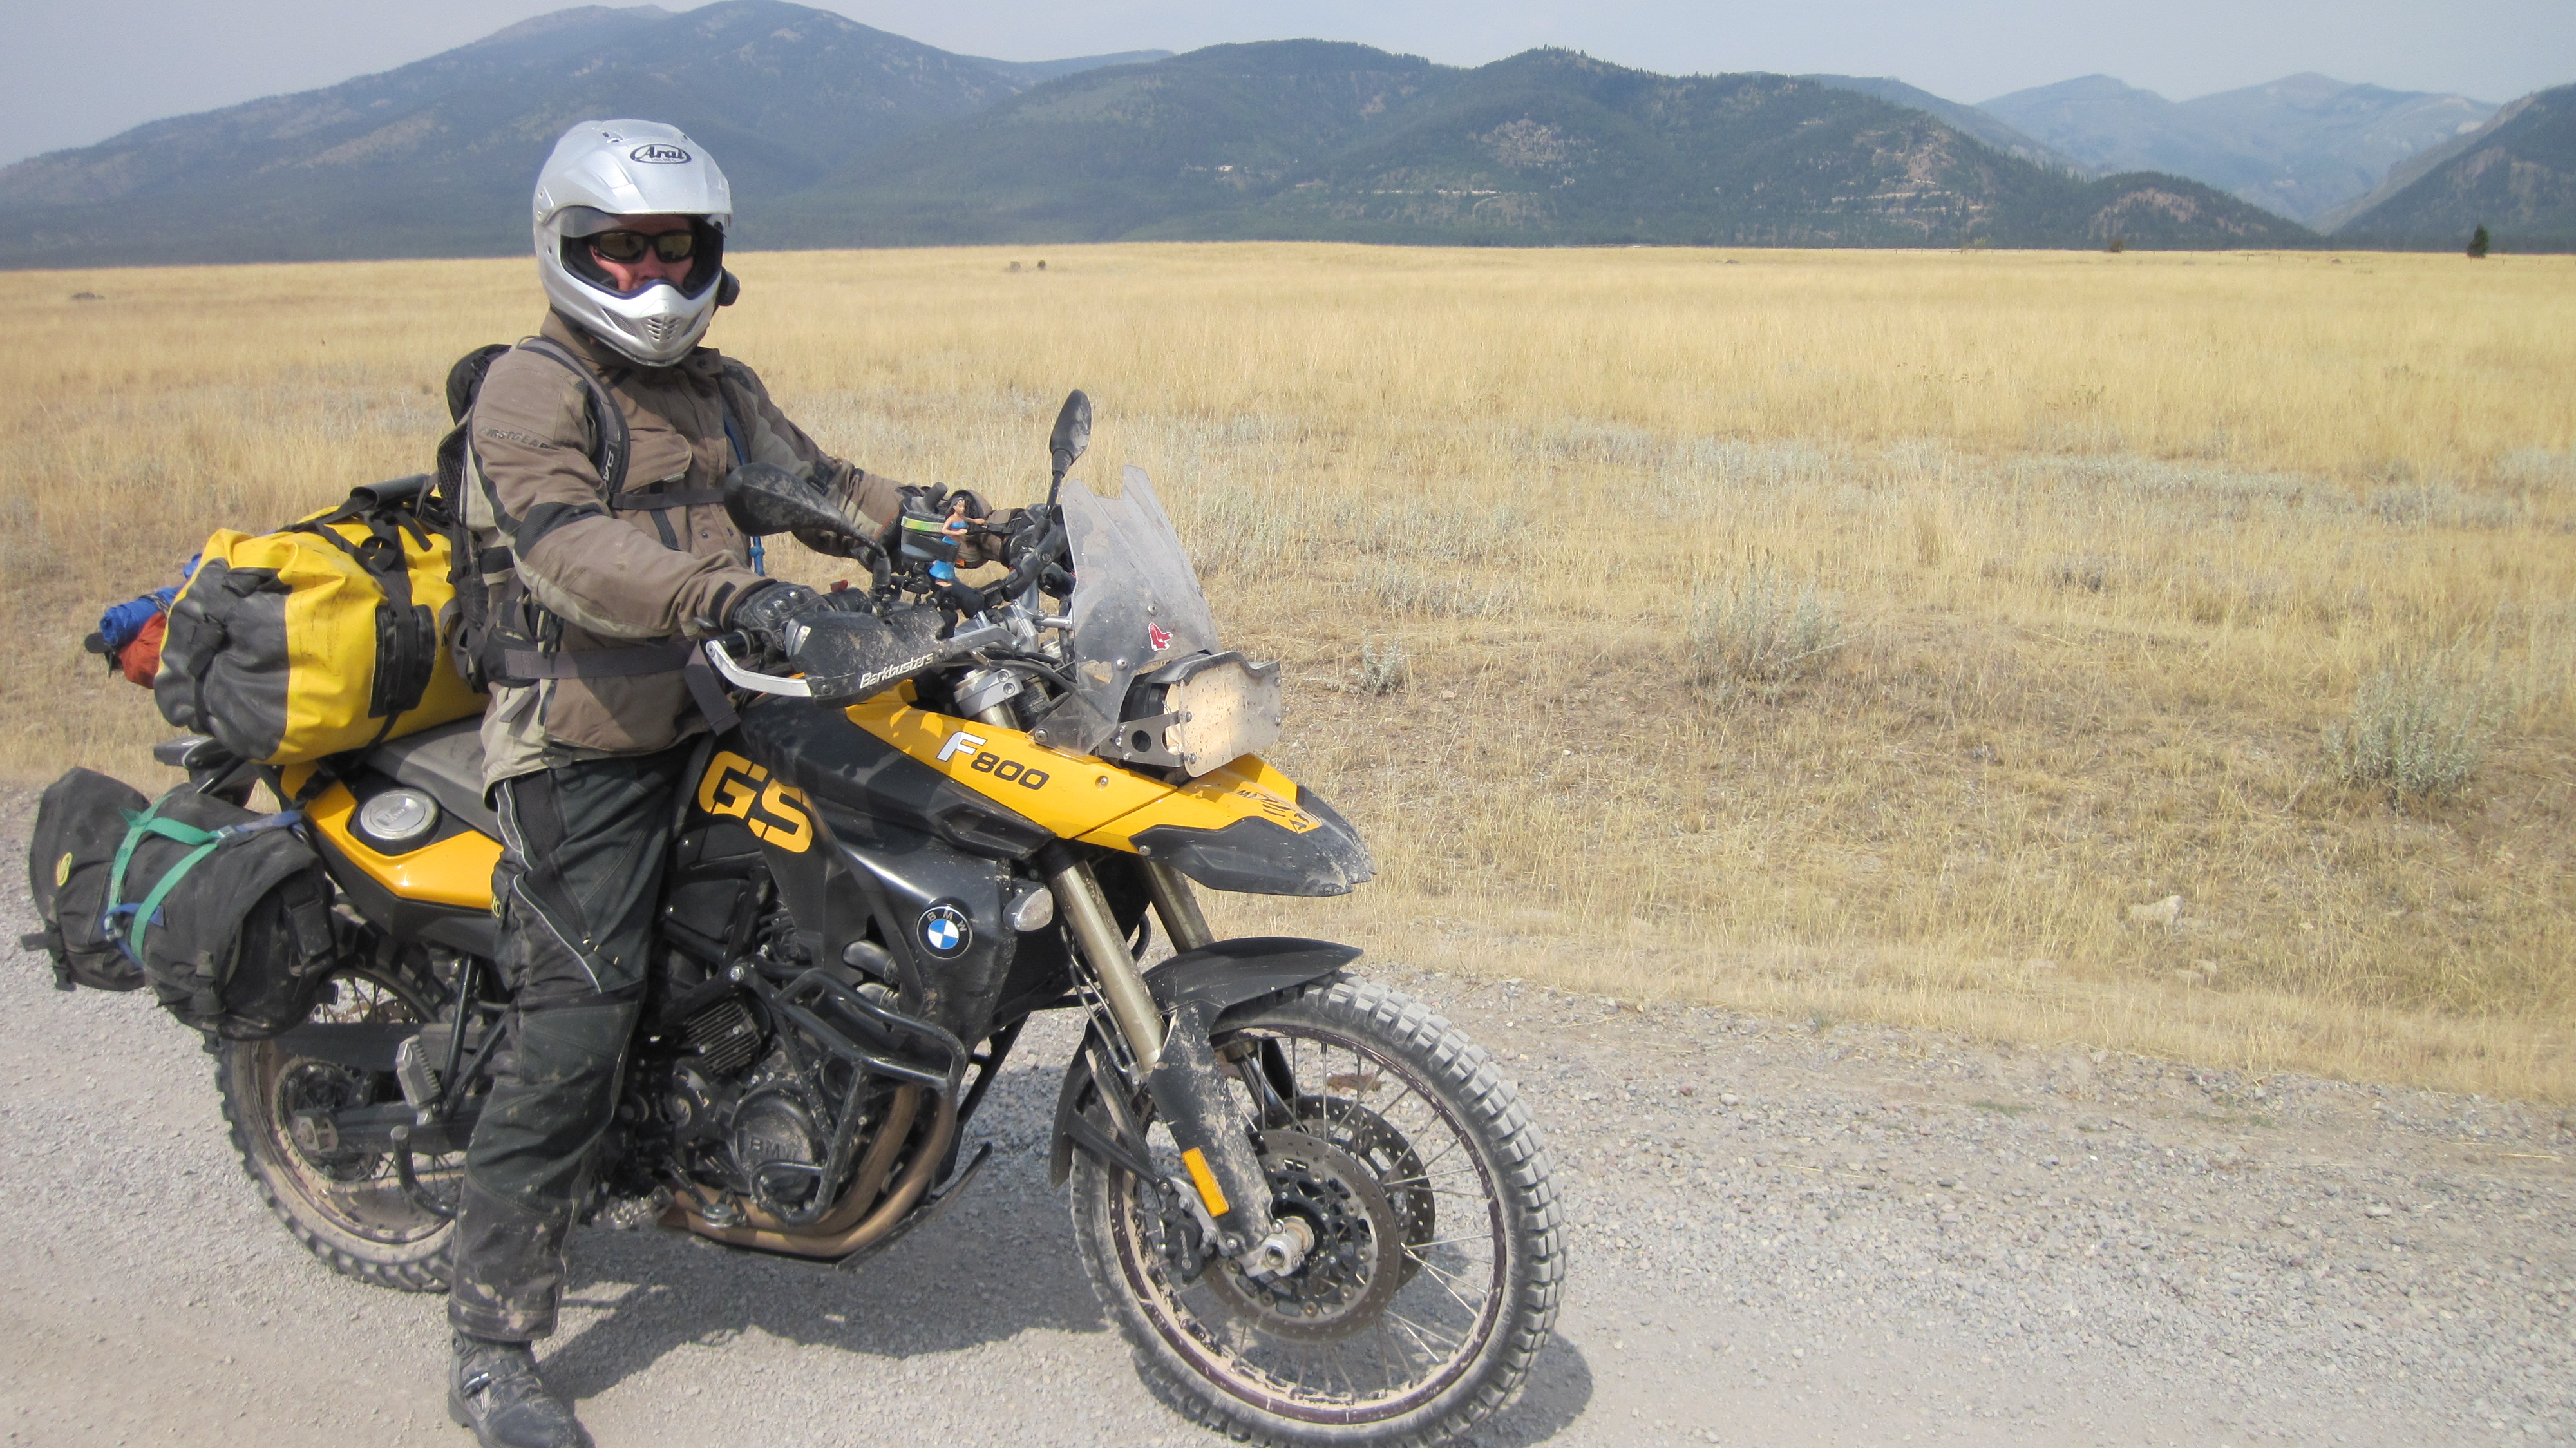 File Bmw F800gs And Rider Jpg Wikimedia Commons